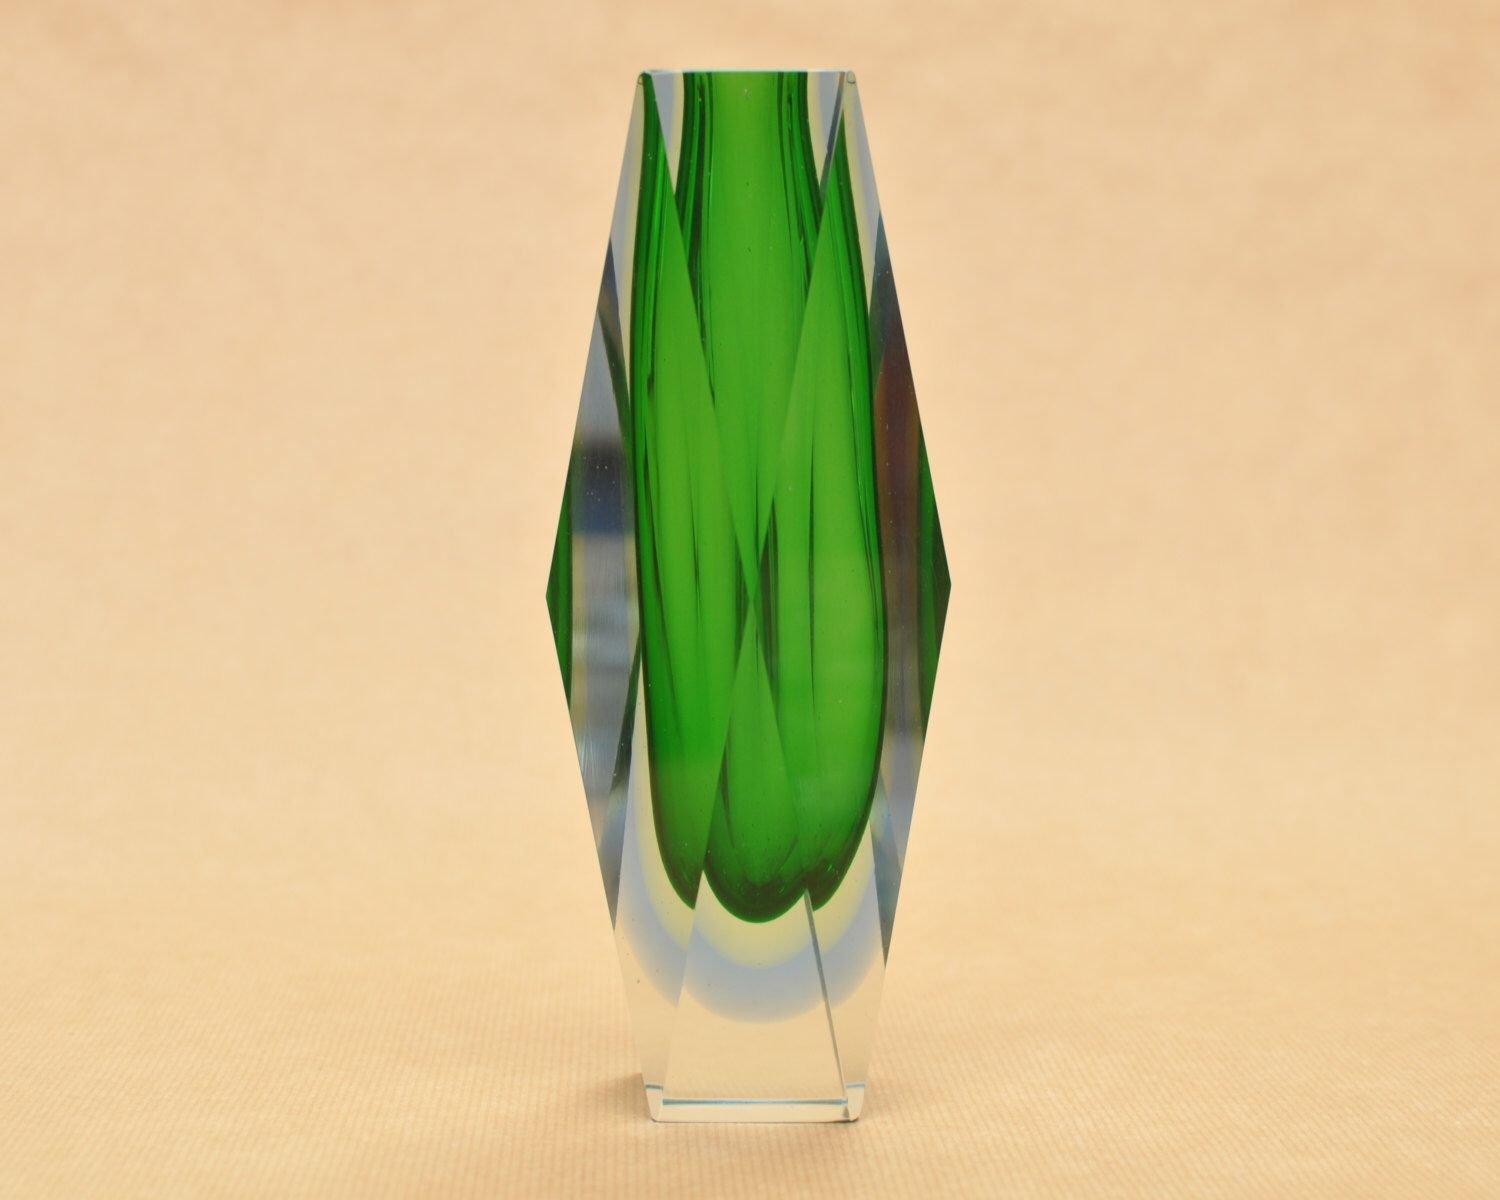 Pin by fosse says hi on Vase | Pinterest | Faceted glass and Glass art